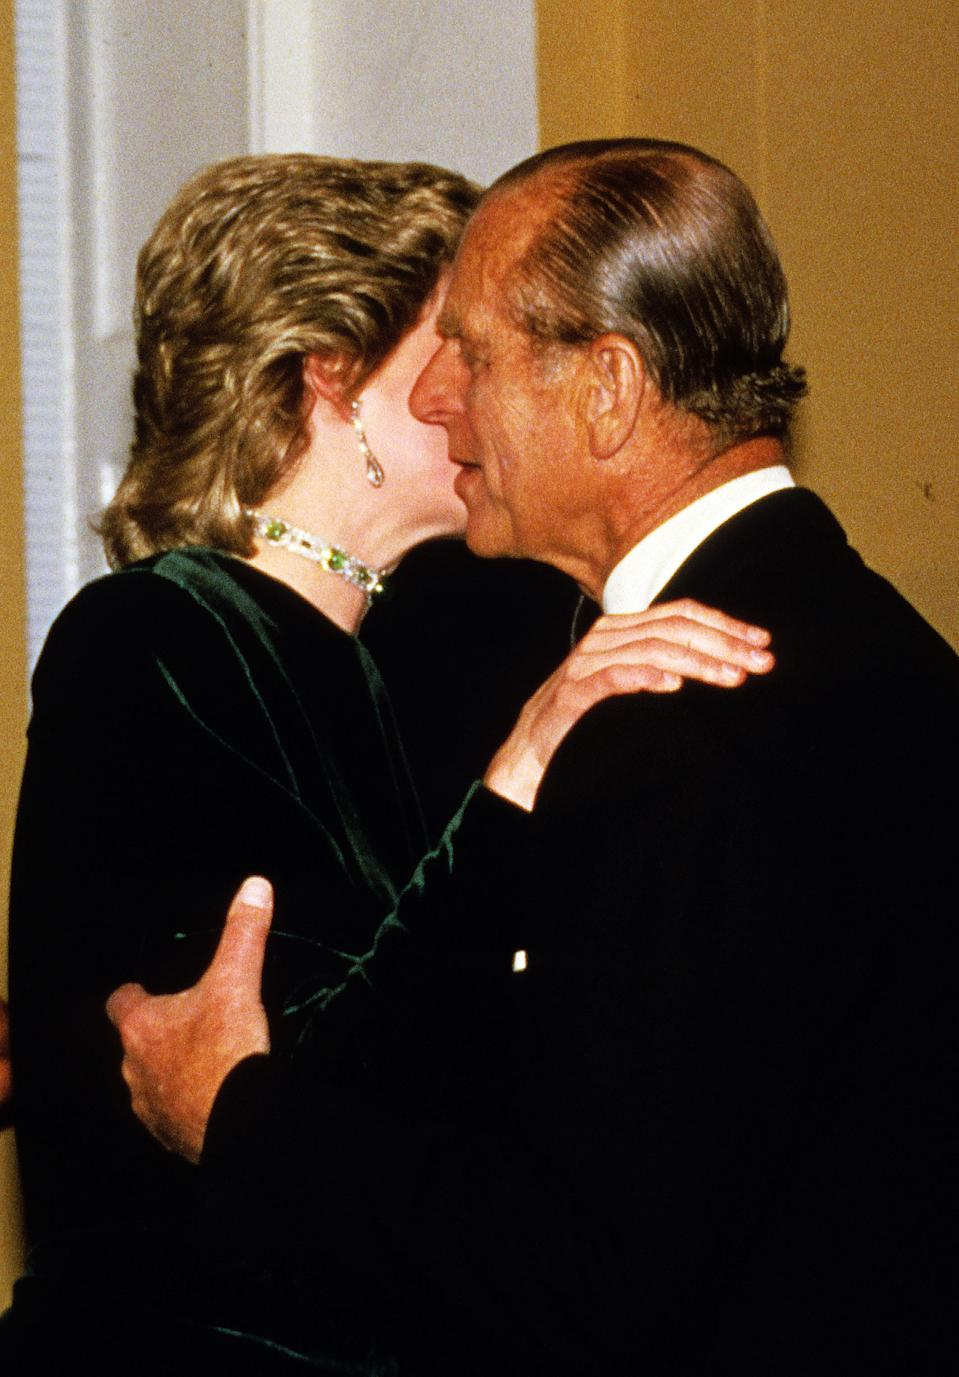 LONDON:  The Duke of Edinburgh receives a kiss from Diana, Princess of Wales in London.  (Photo by Anwar Hussein/WireImage)